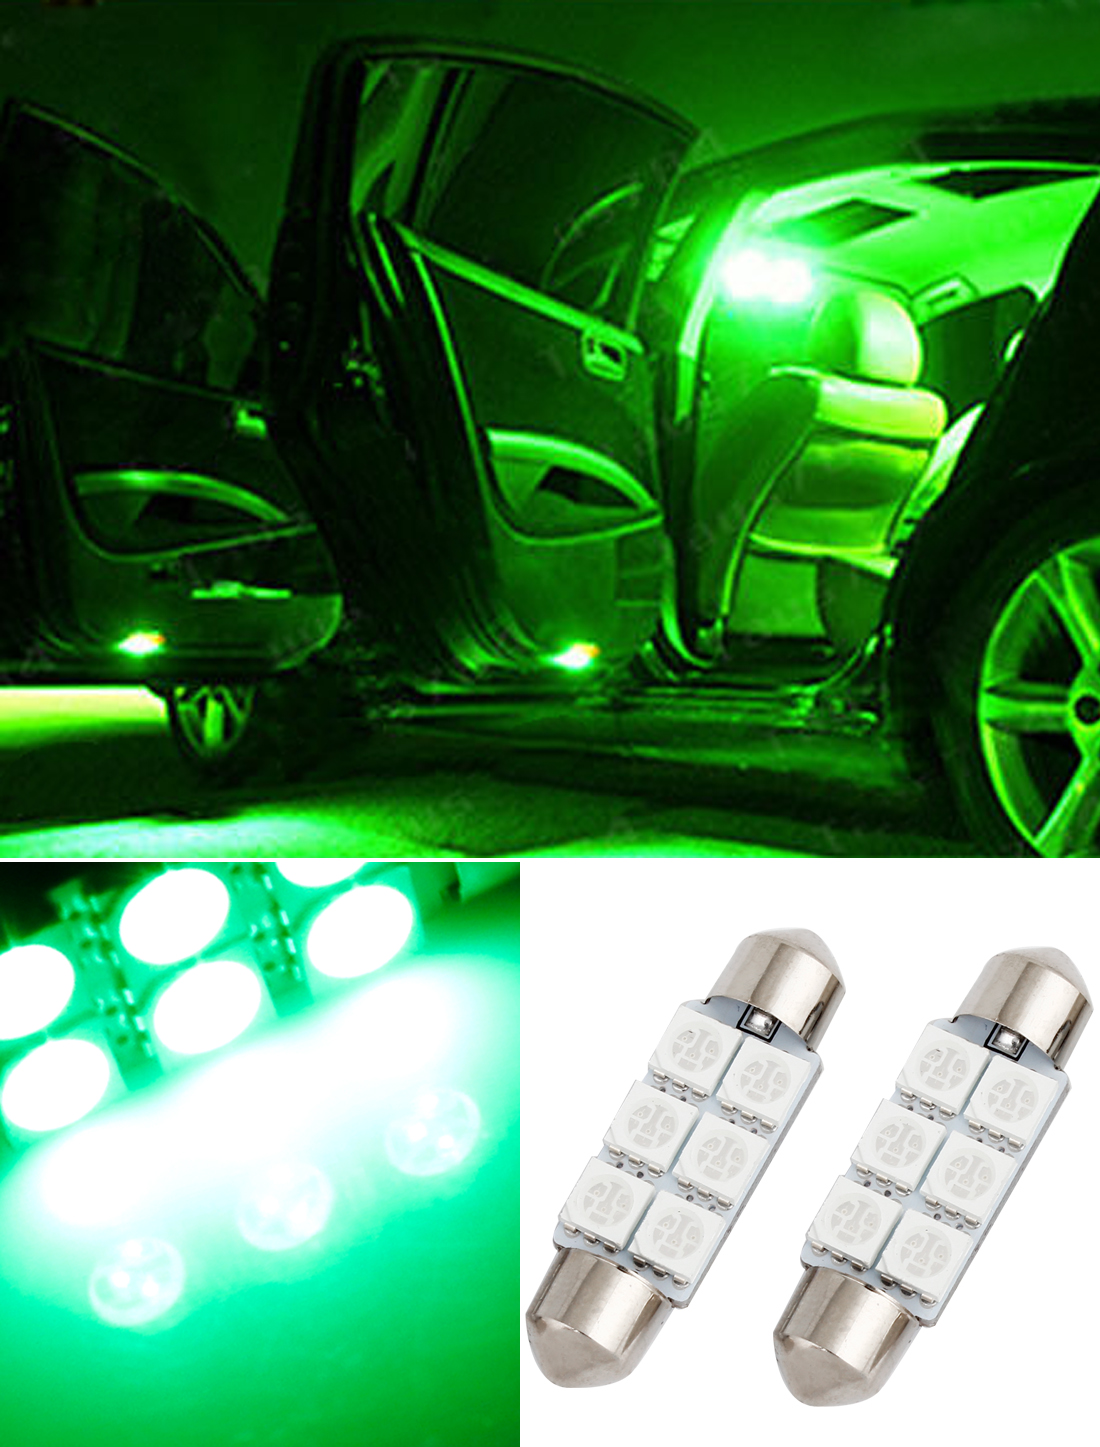 2 X Green 39mm 6 Led 5050 Smd Festoon Dome Car Light Interior Lamp Bulb 12v New Ebay